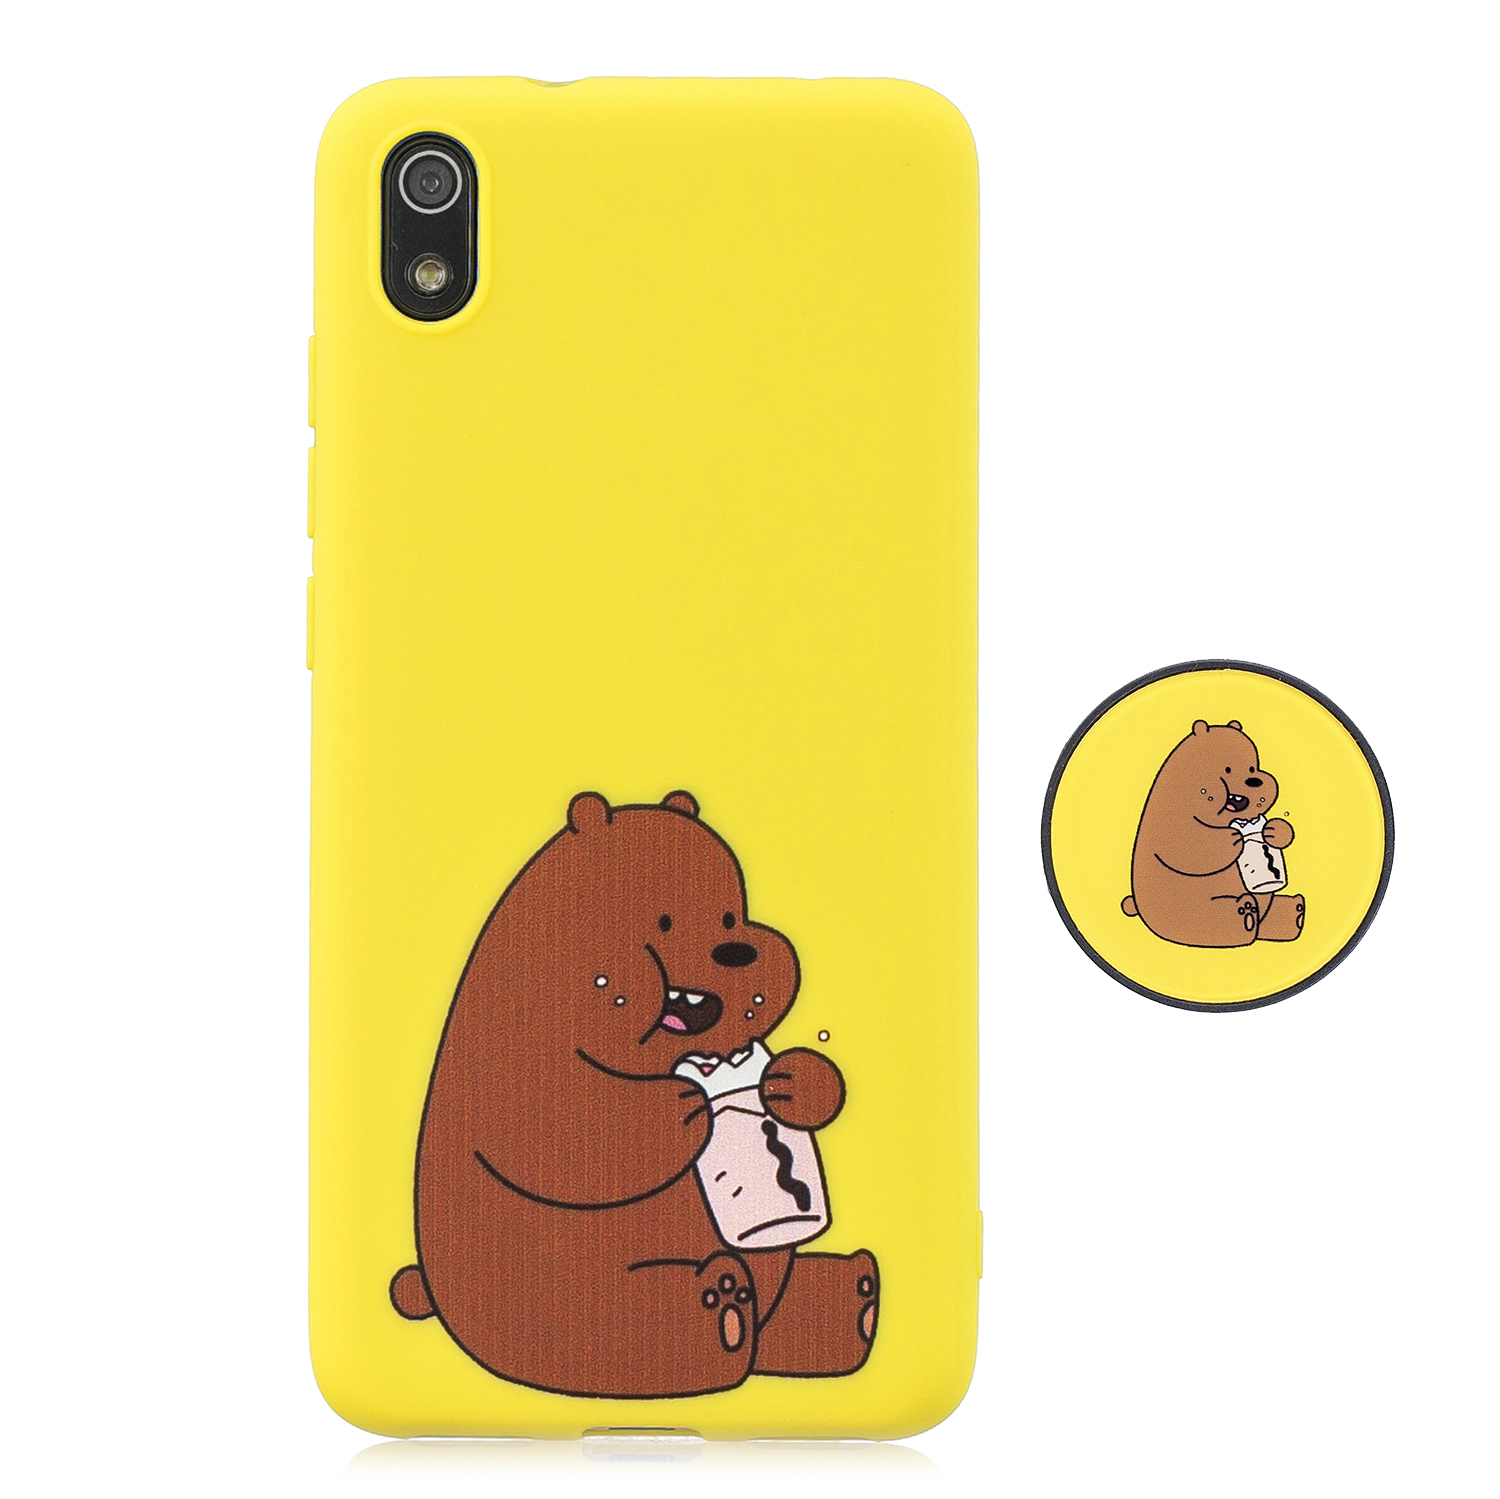 For Redmi 7A Soft TPU Full Cover Phone Case Protector Back Cover Phone Case with Matched Pattern Adjustable Bracket 8